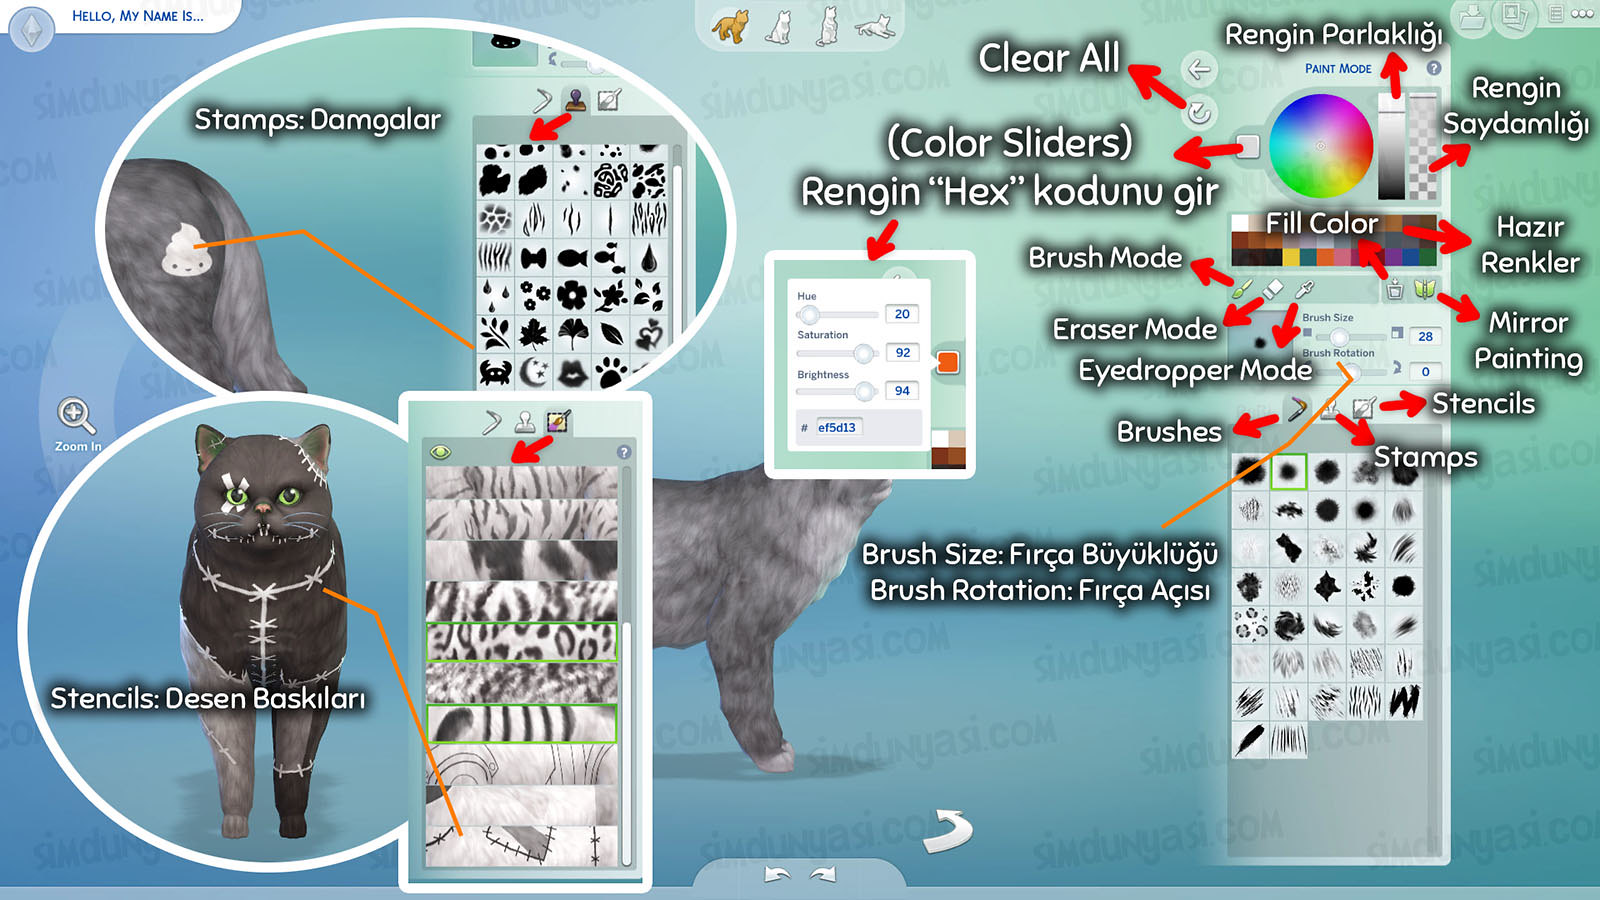 The Sims 4: Cats & Dogs Create a Pet Paint Mode Create a Style